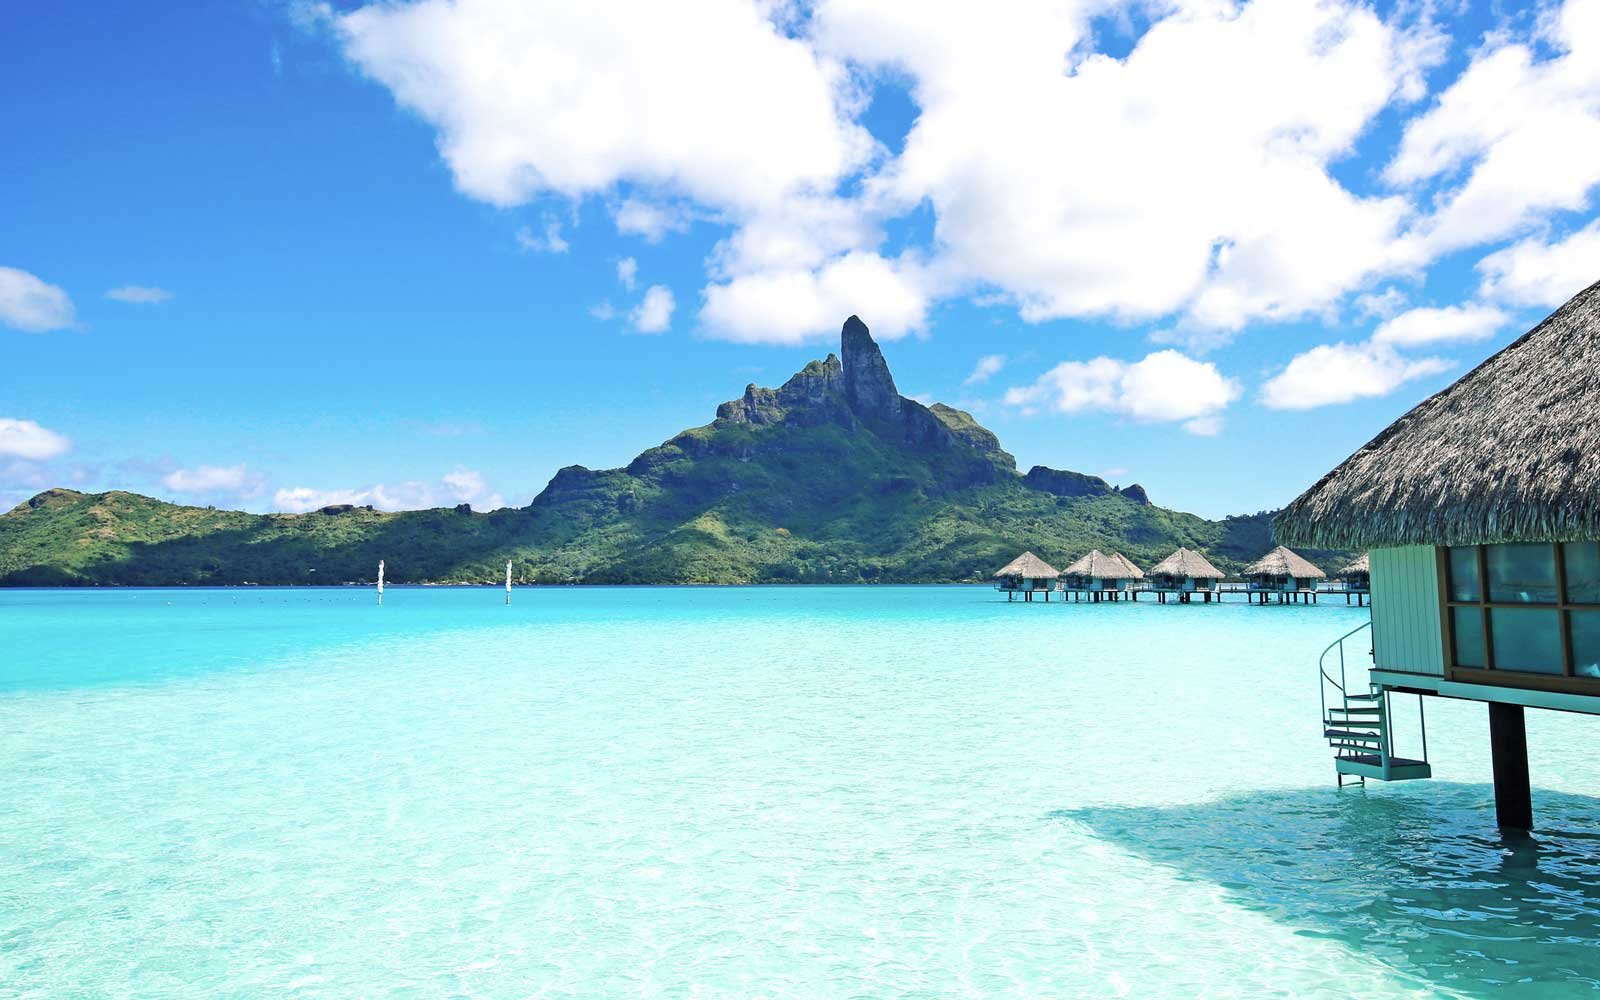 World's Best Islands for Beaches and Natural Attractions